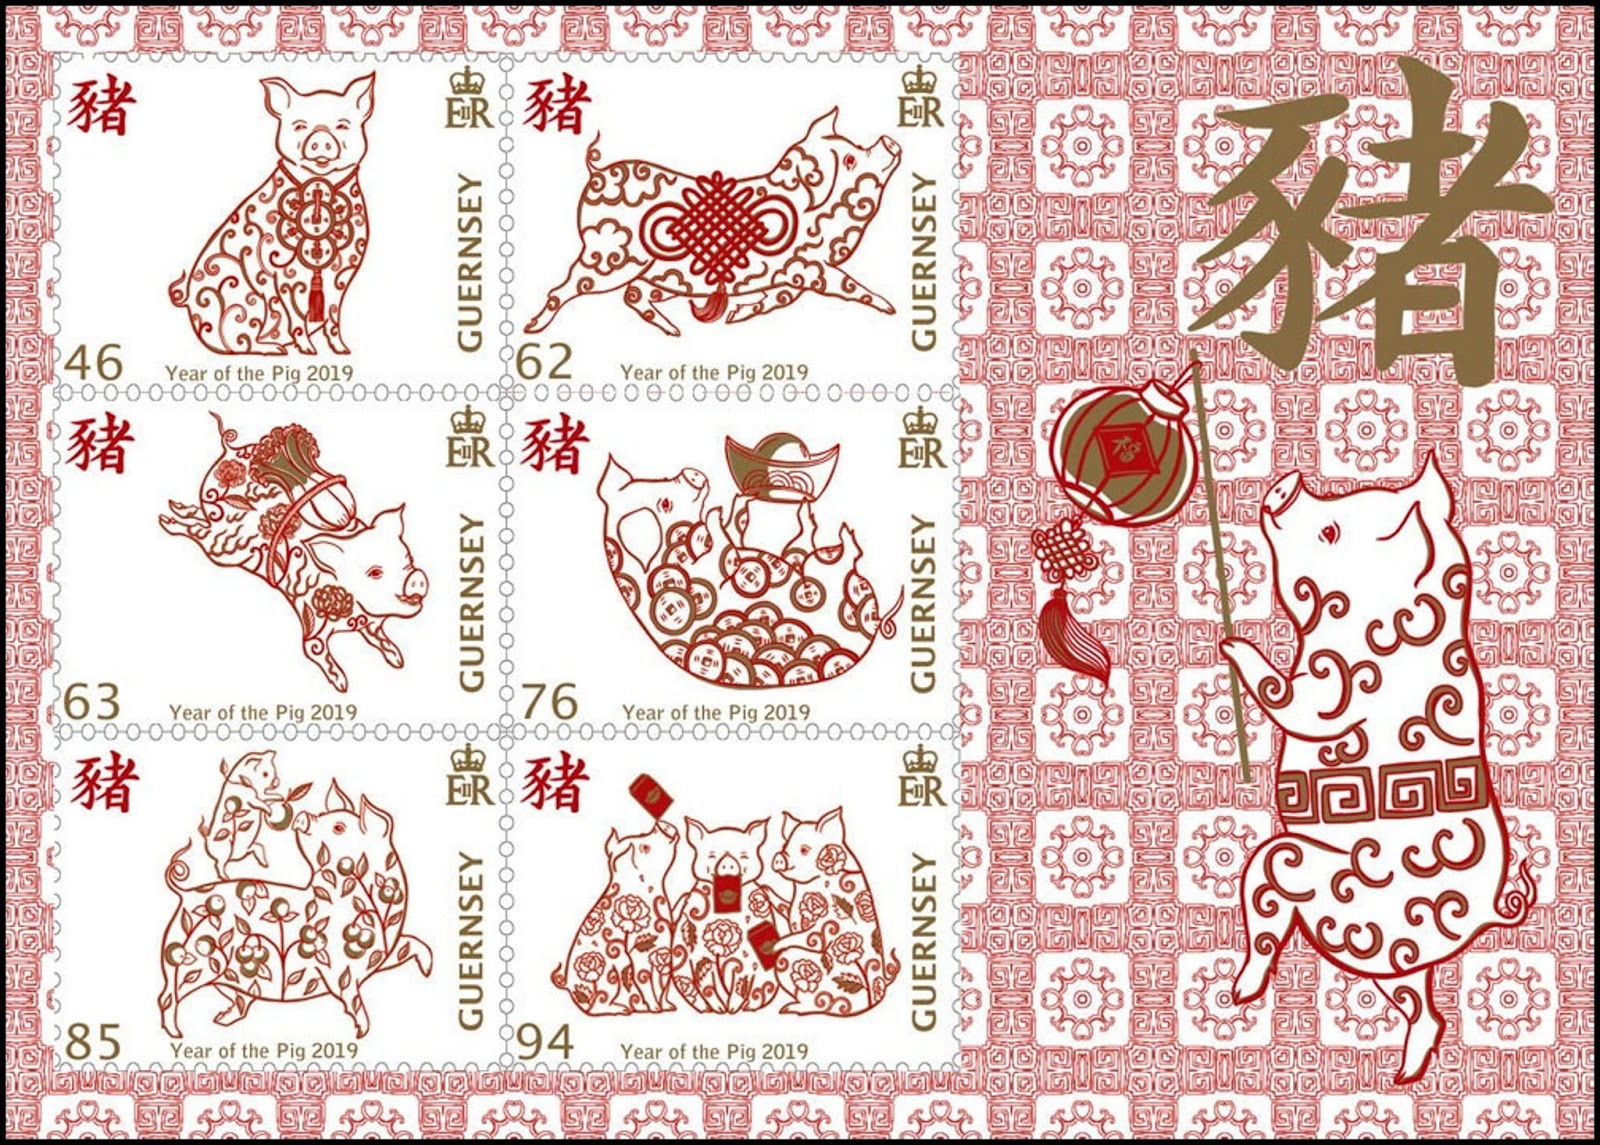 Guernsey - Year of the Pig (January 22, 2019) souvenir sheet of 6